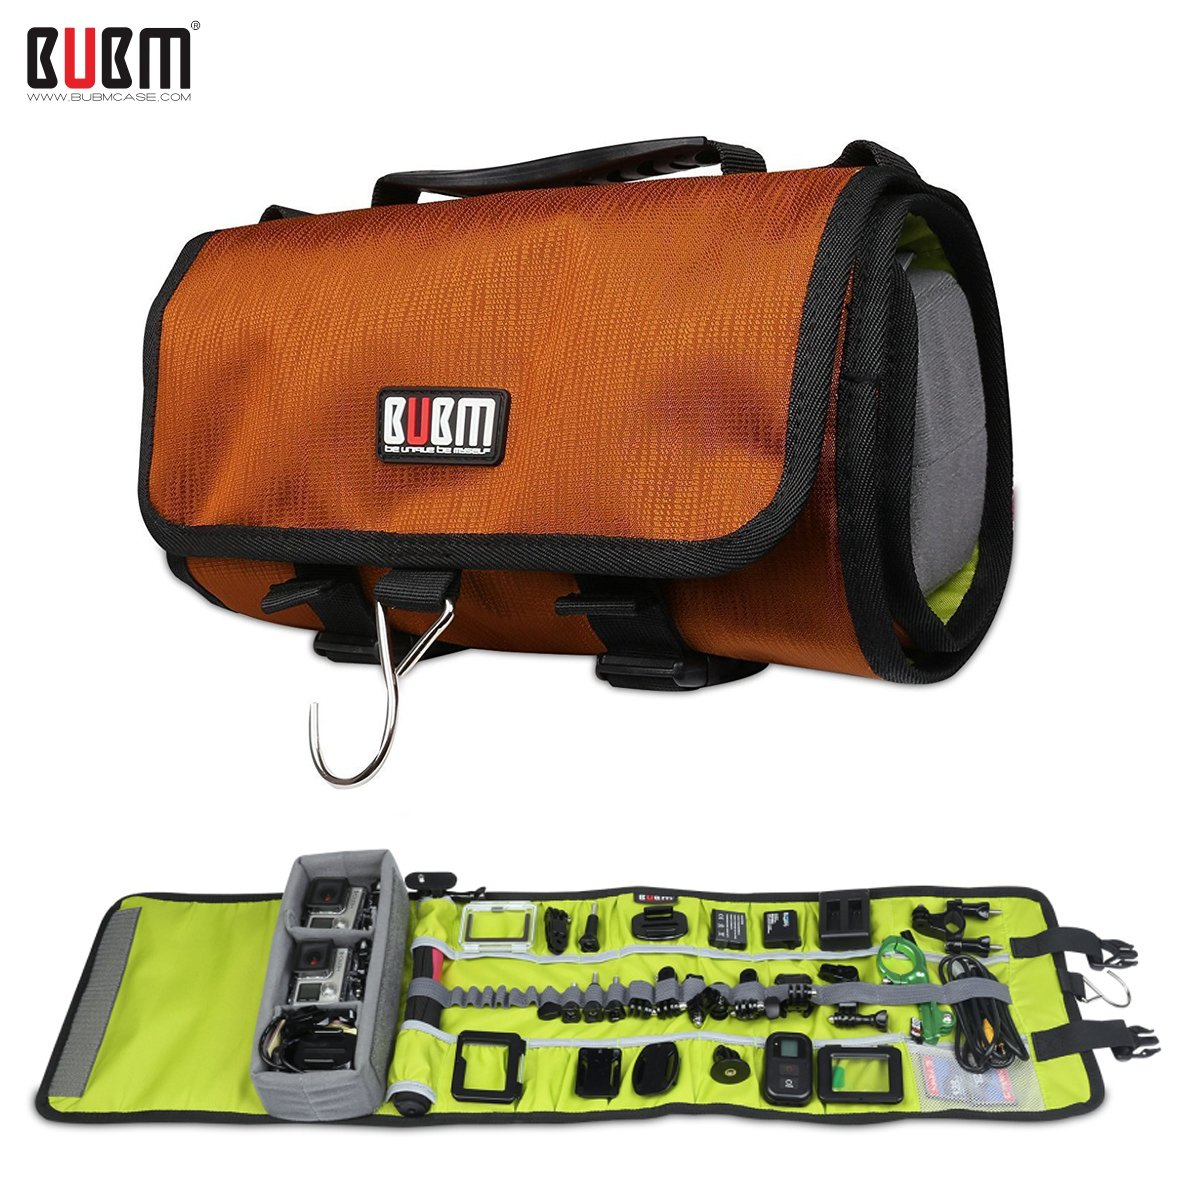 BUBM Large Canvas Travel Roll Bag Camera Rollup Protective Case for GoPro Hero4/3+/3 sj4000 , Camera Accessories Rollup Shoulder Bag for GoPro Cameras and Accessories(Orange)